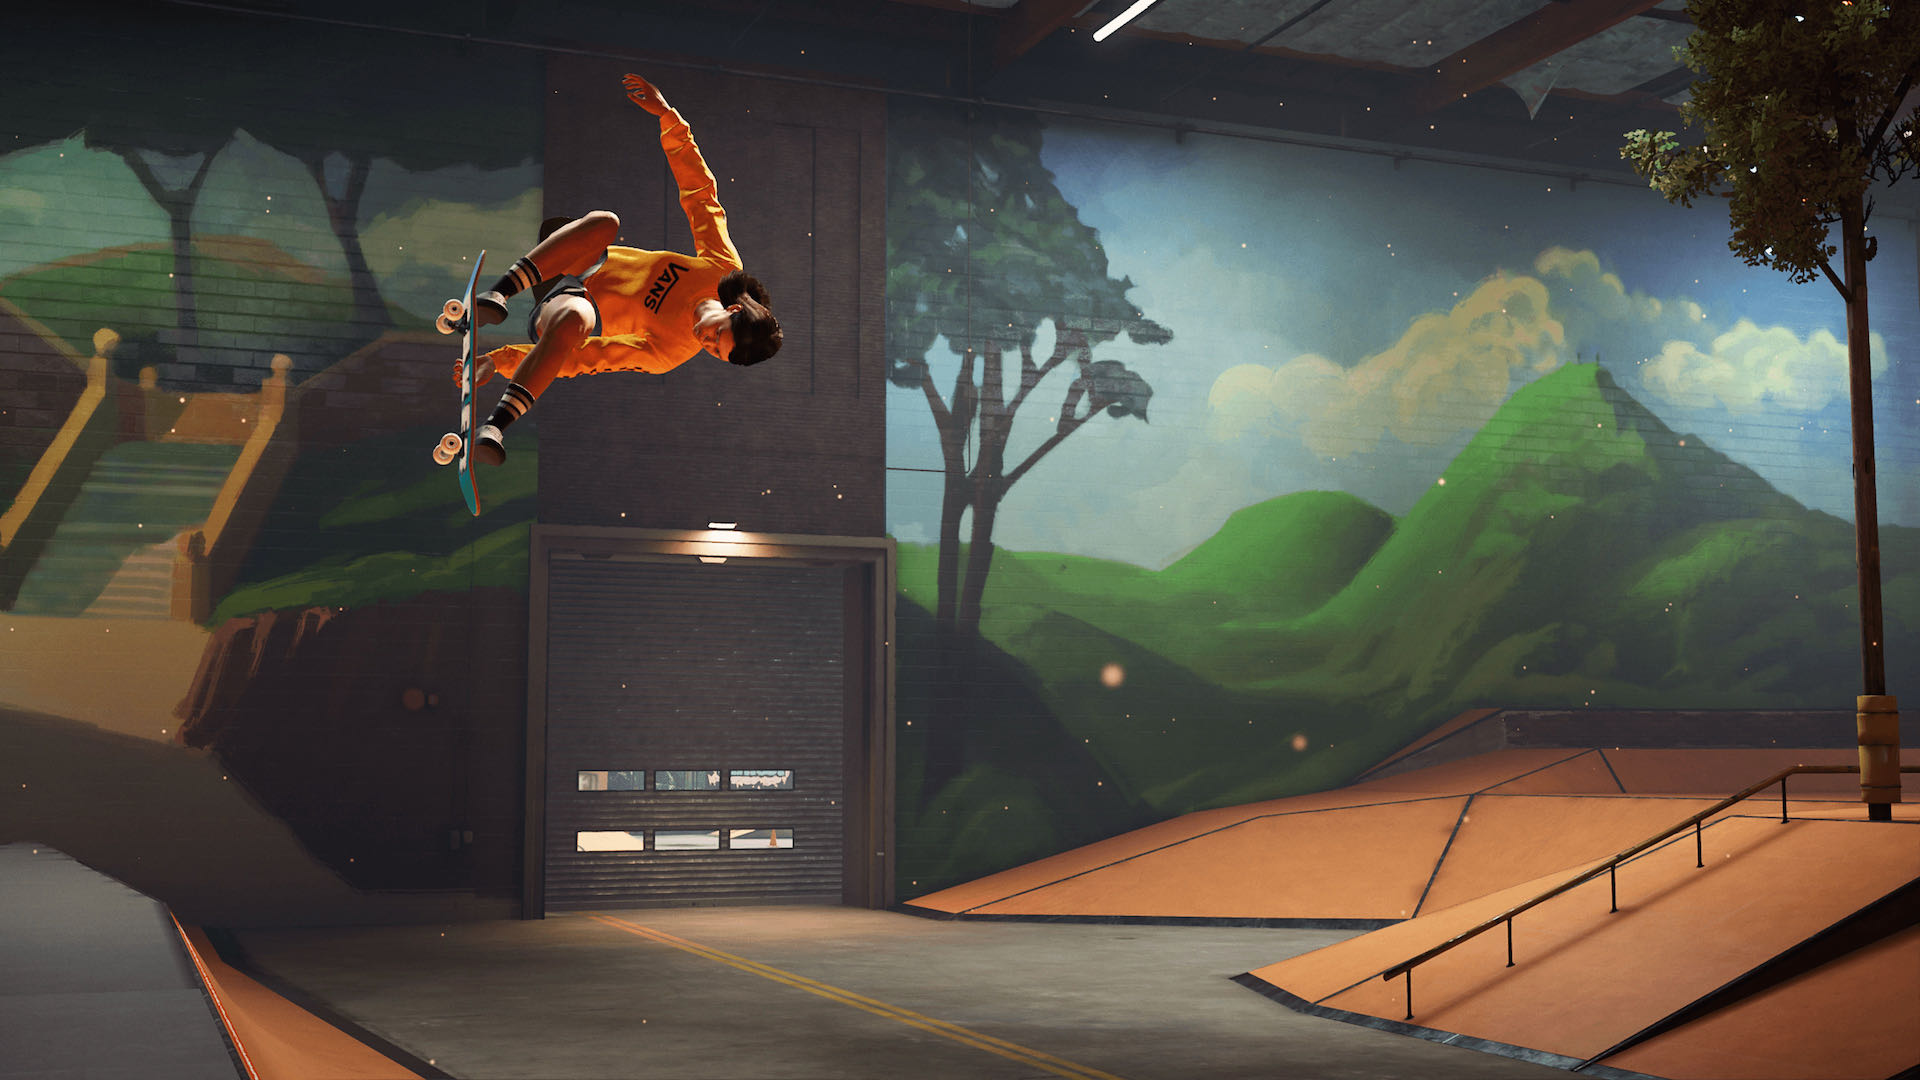 A screenshot from THPS, a skater wearing orange performs a Melon grab in a skatepark.